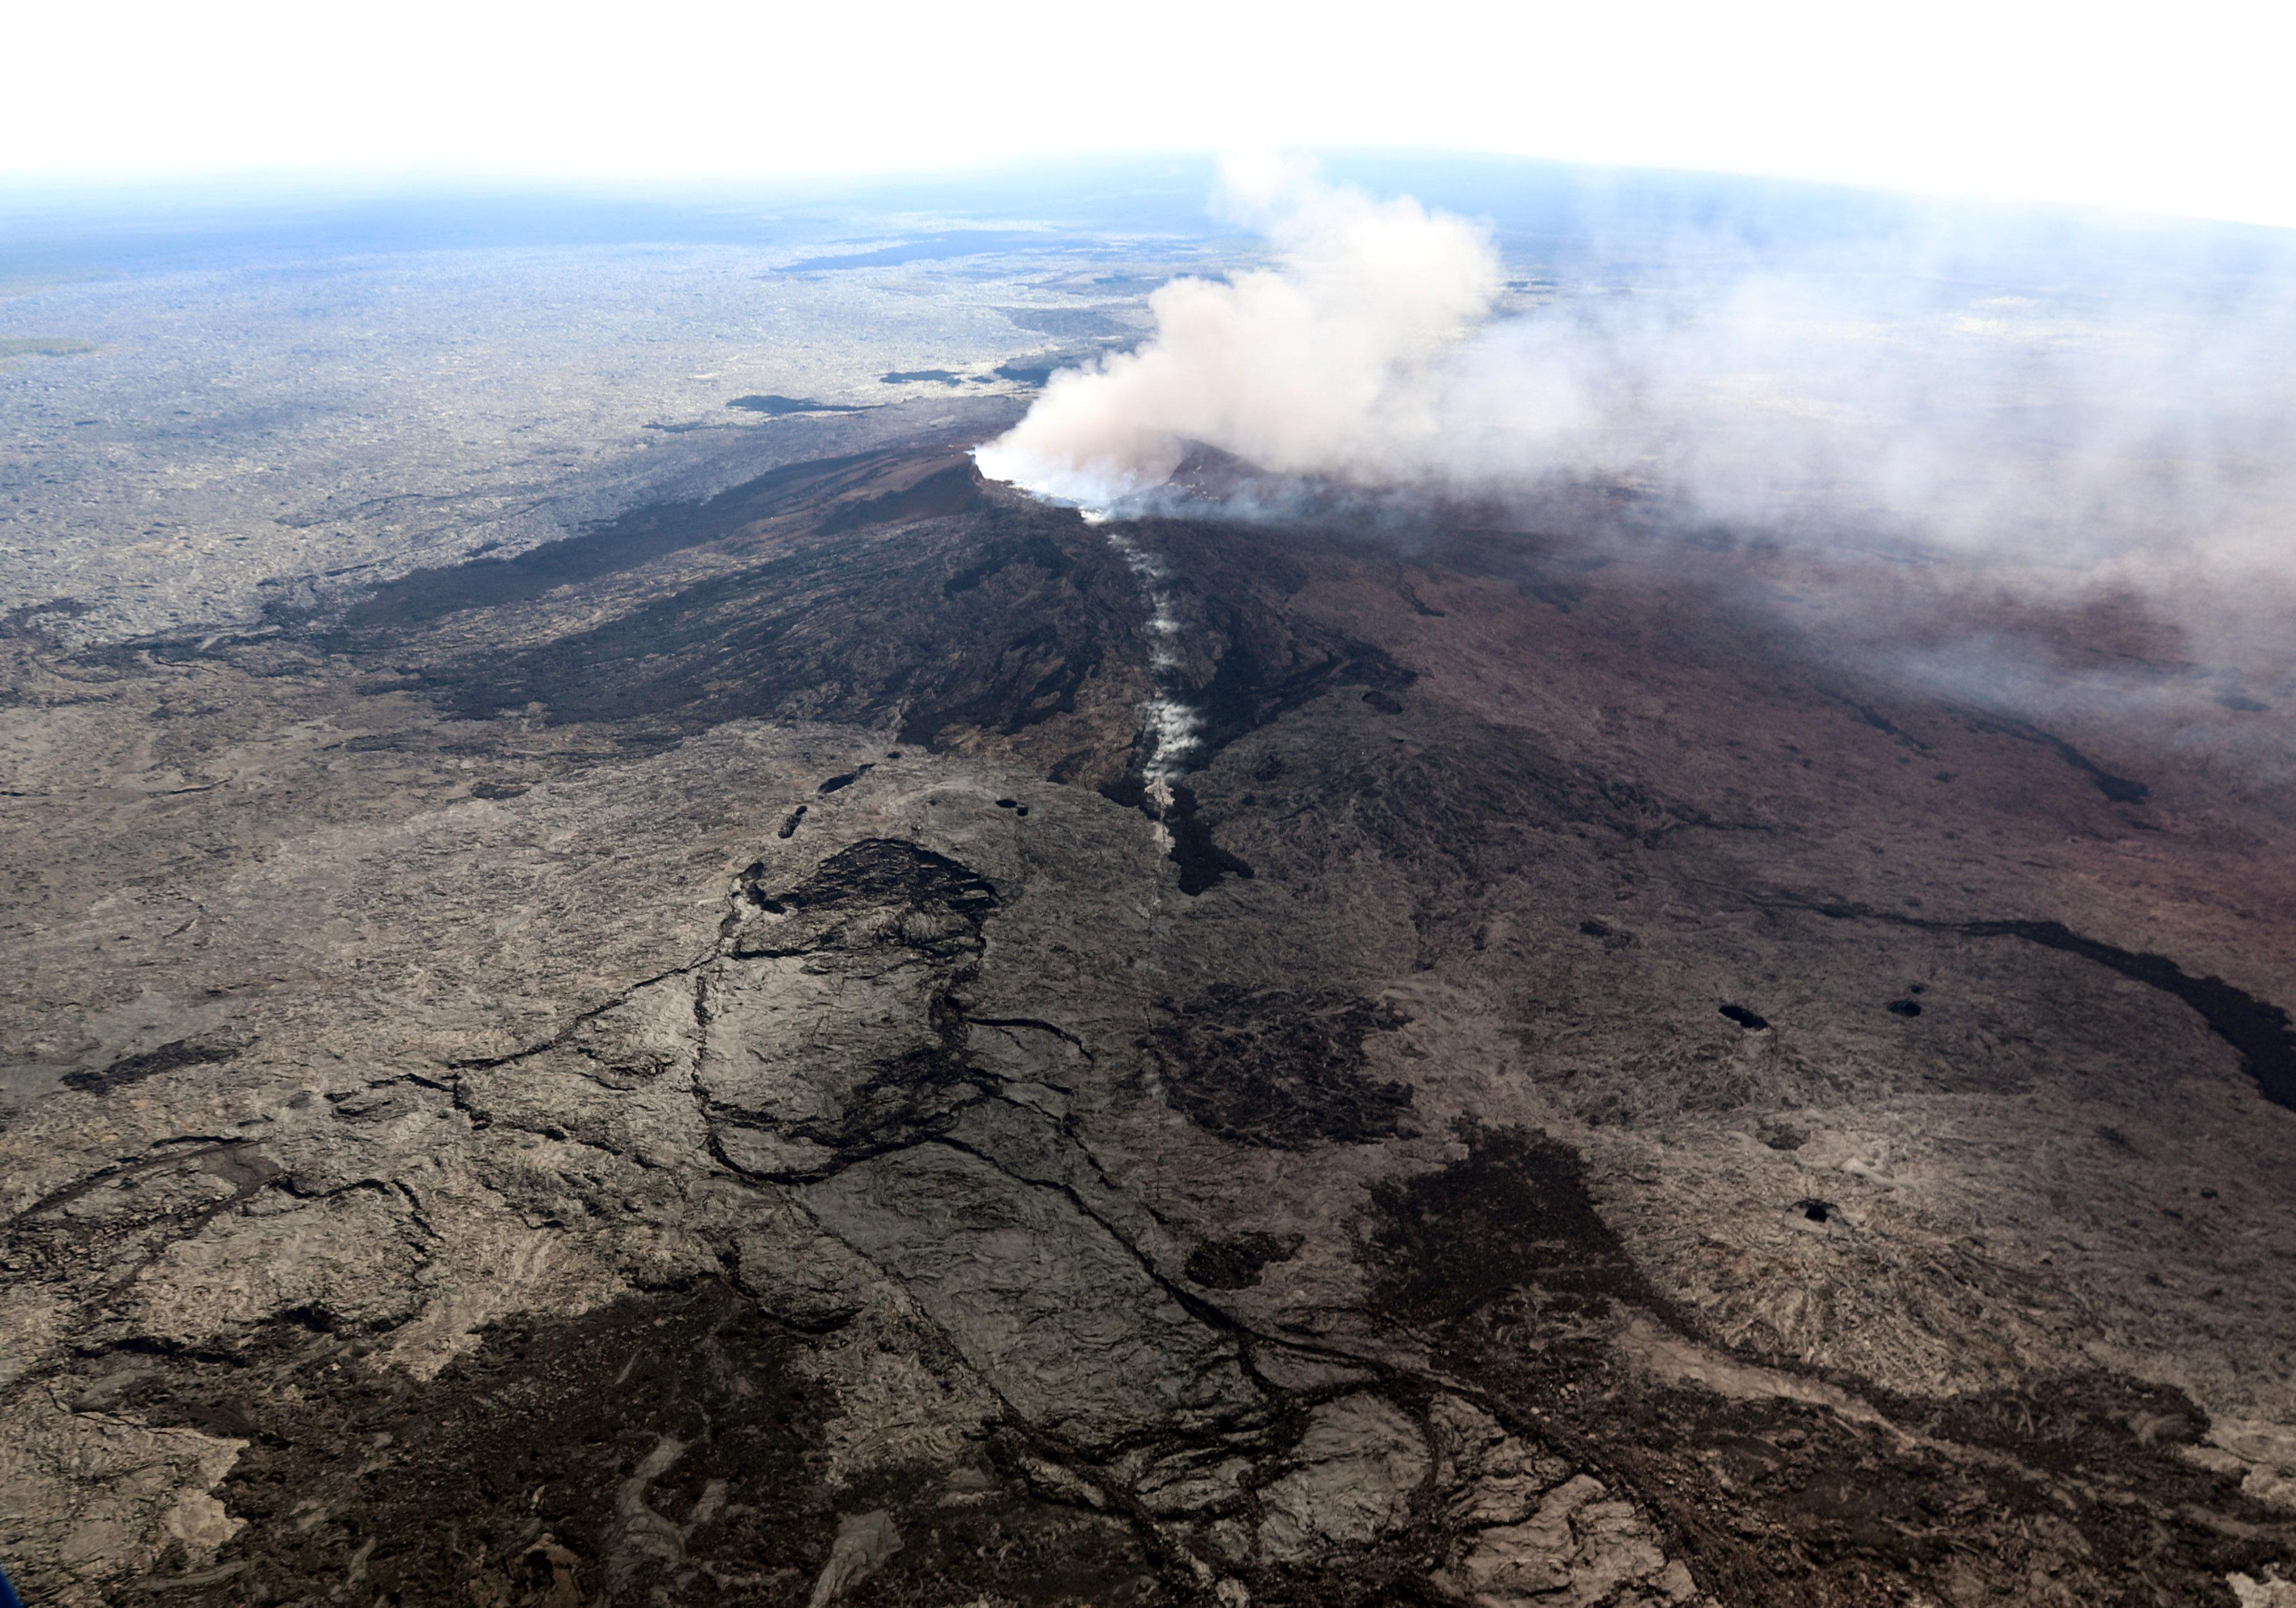 The Kilauea Volcano fissure that formed on the west flank of the Pu'u 'O'o cone (line of white steam) is seen in this aerial image after the volcano erupted following a series of earthquakes over the last couple of days, in Hawaii, U.S. on May 3, 2018. Picture taken on May 3, 2018.  USGS/Handout via